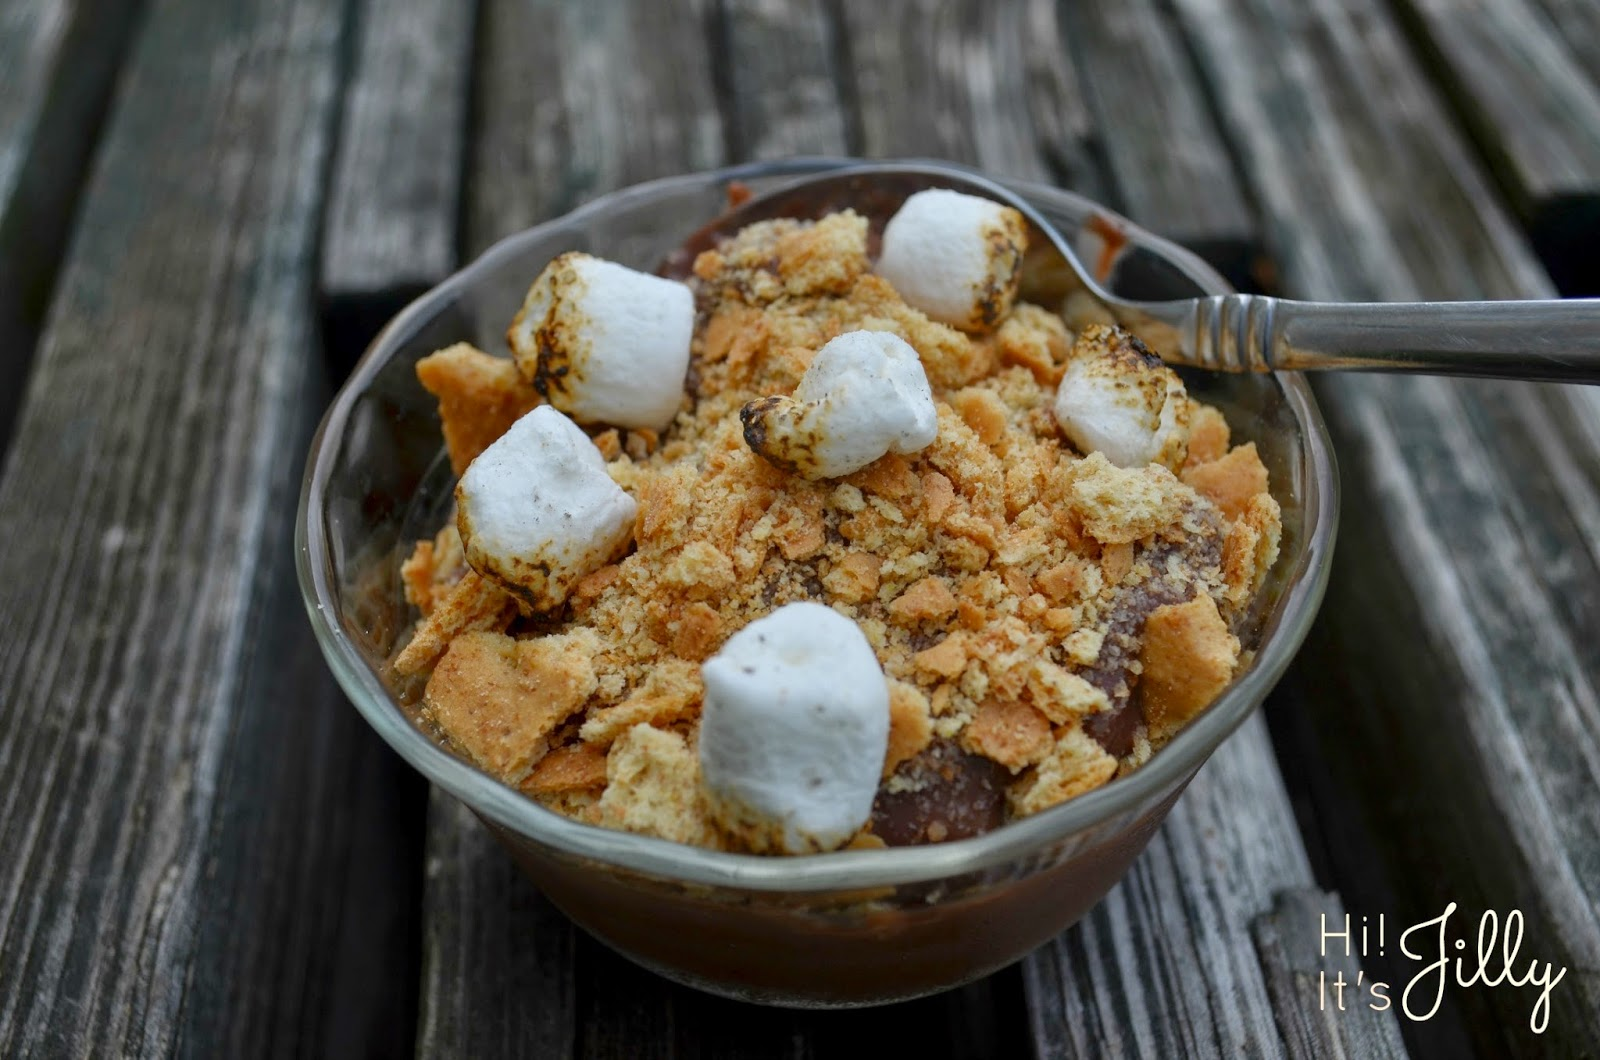 Add some toasted marshmallows and graham crackers to your Kozy Shack chocolate pudding for a s'more in a bowl!! #puddinglove #yum #smores